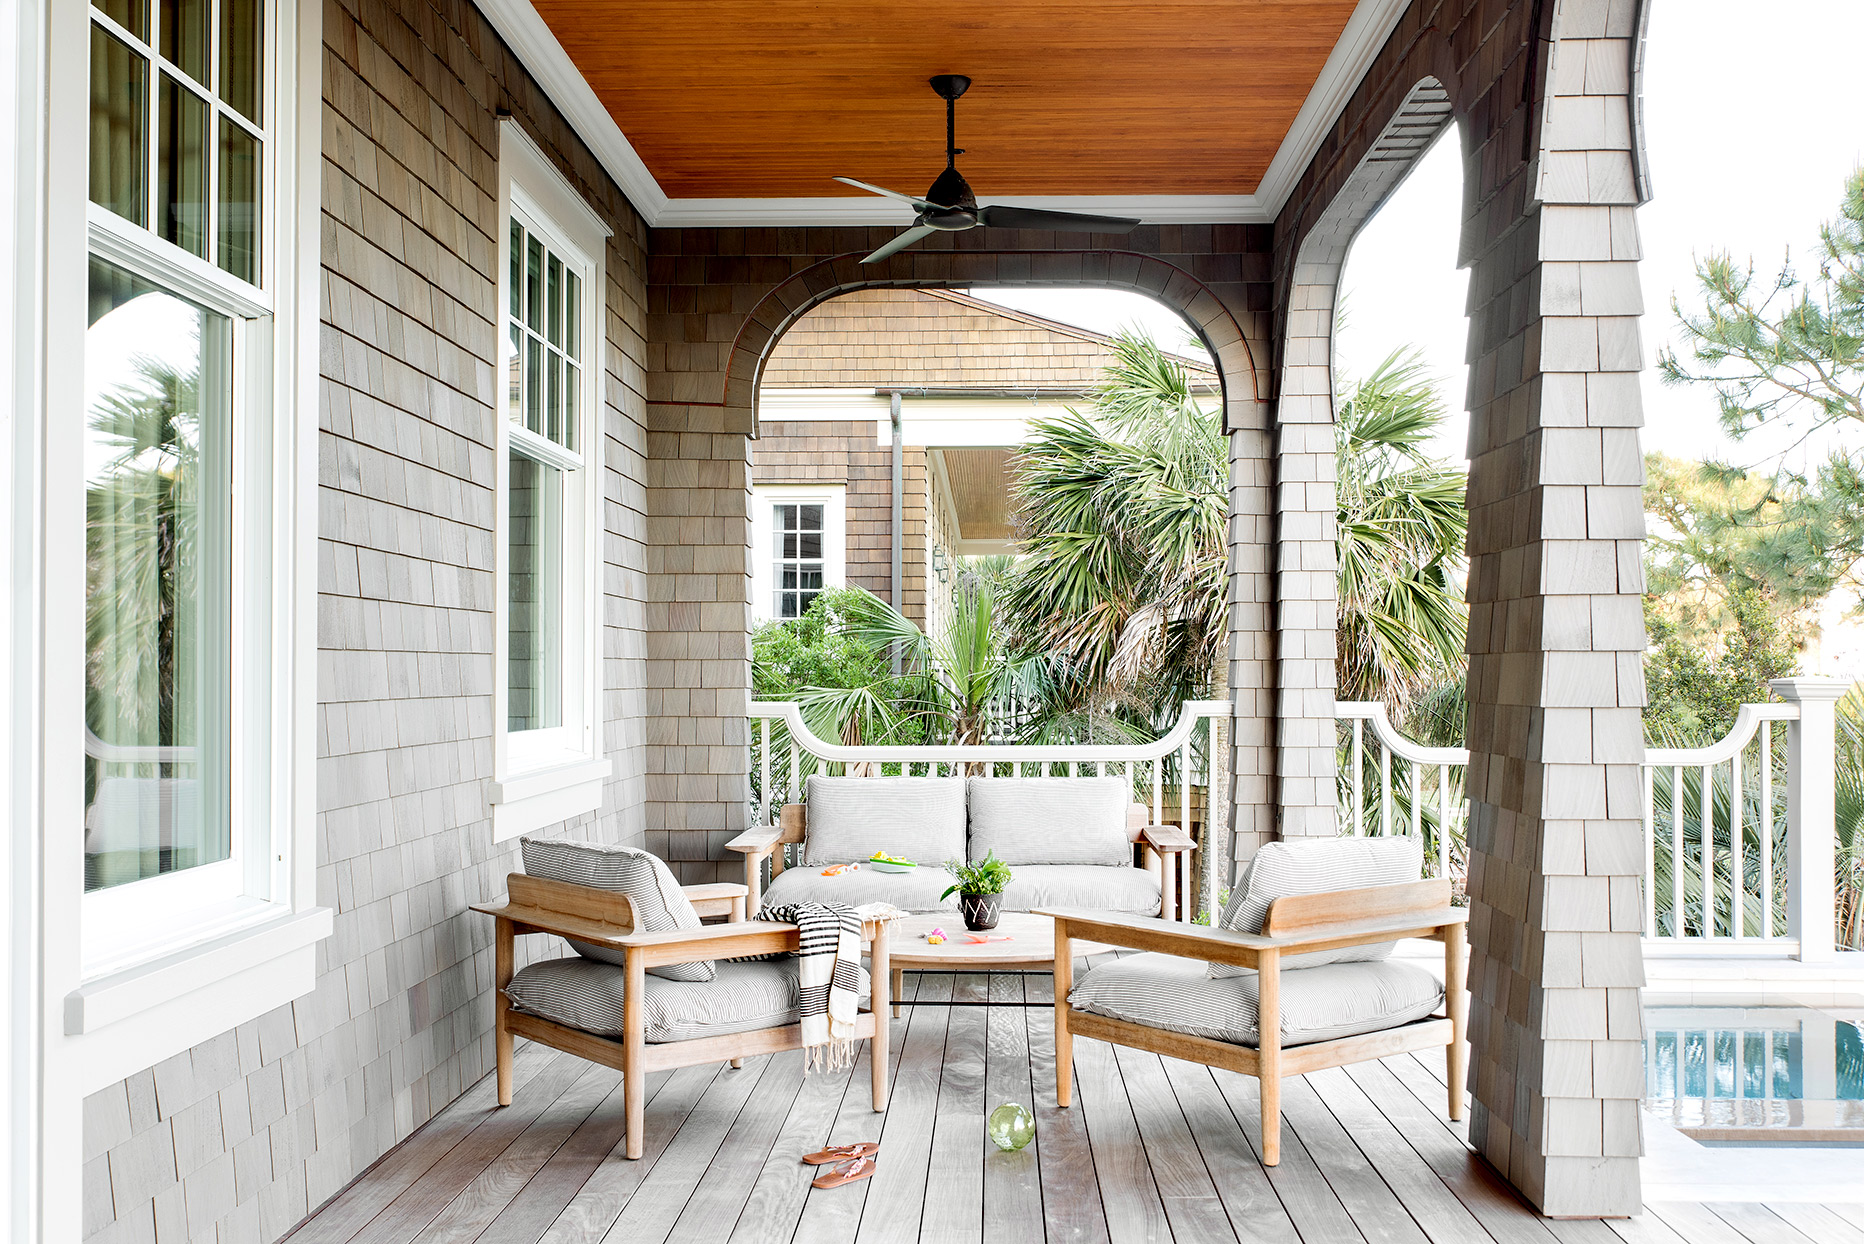 Wooden porch with seating and table